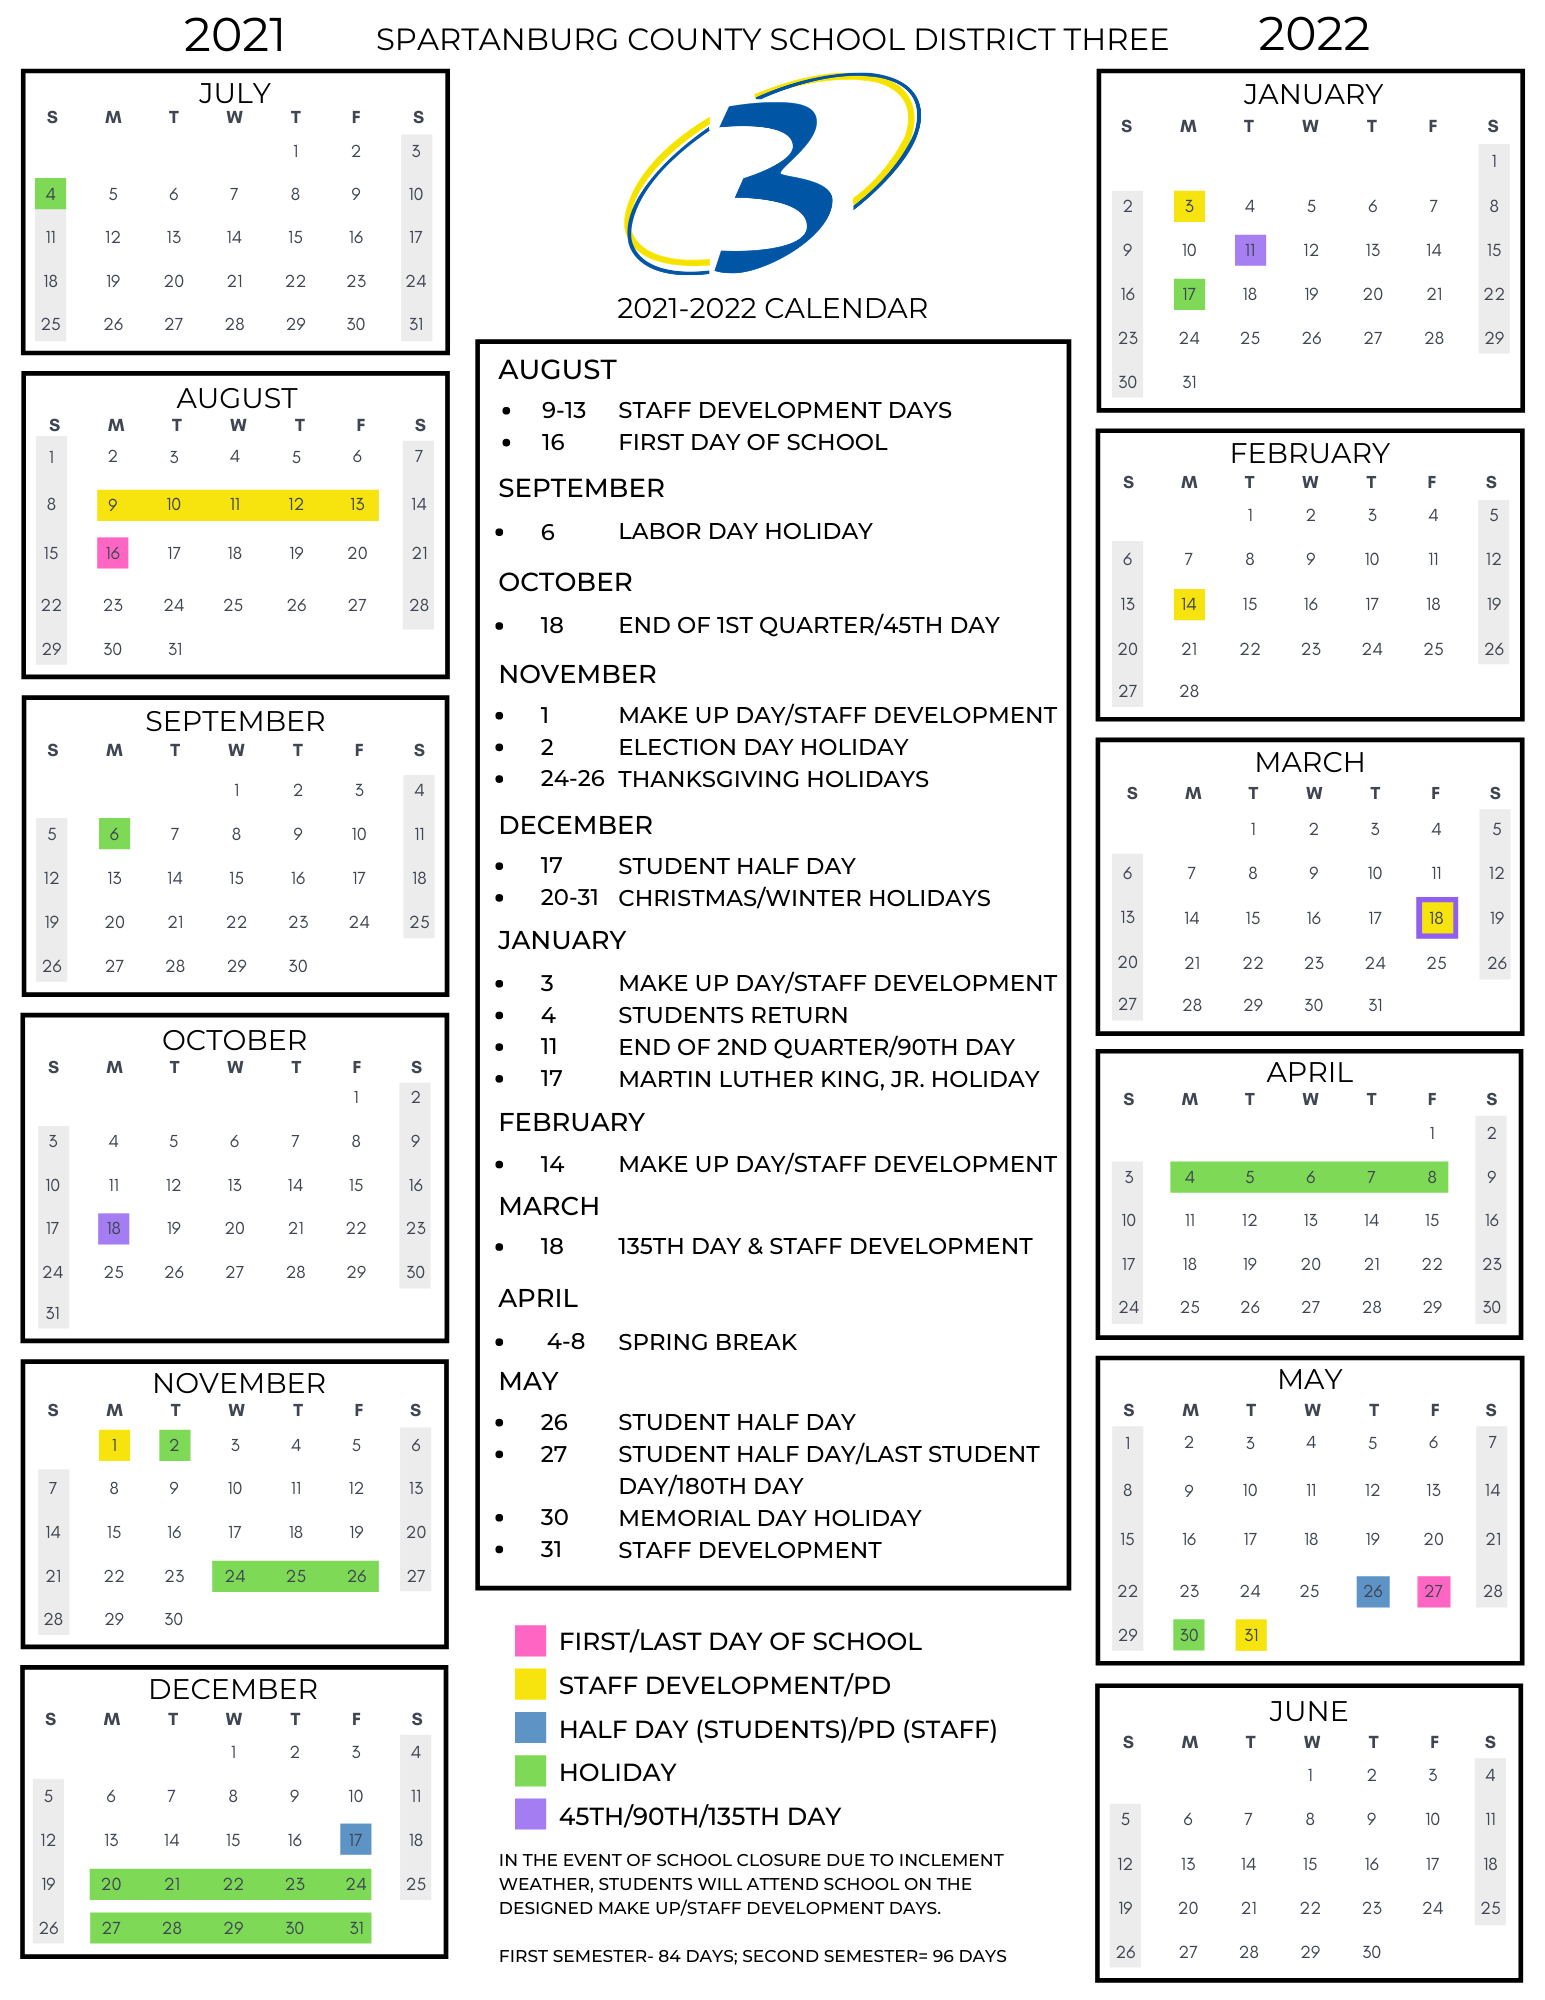 for an ada friendly version of the calendar, please email amyles@spartanburg3.org